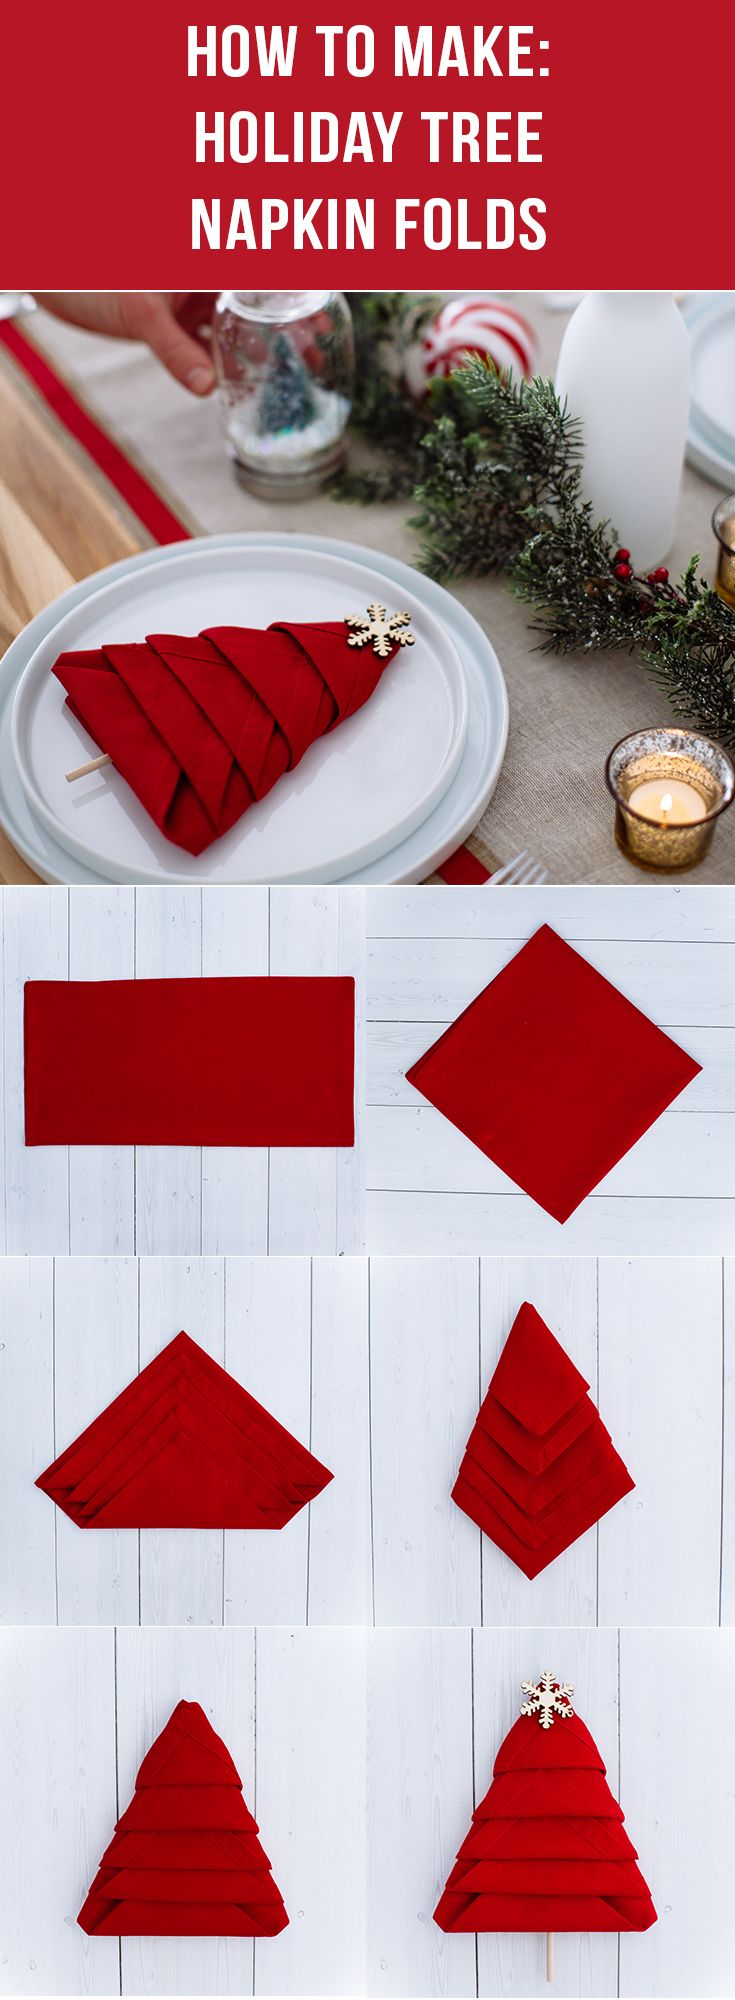 Add personality and style to any holiday table during the festive season with this simple and easy-to-make DIY tree napkin fold! Learn the step-by-step instructions from Walmart today and have a merry and festive holiday!